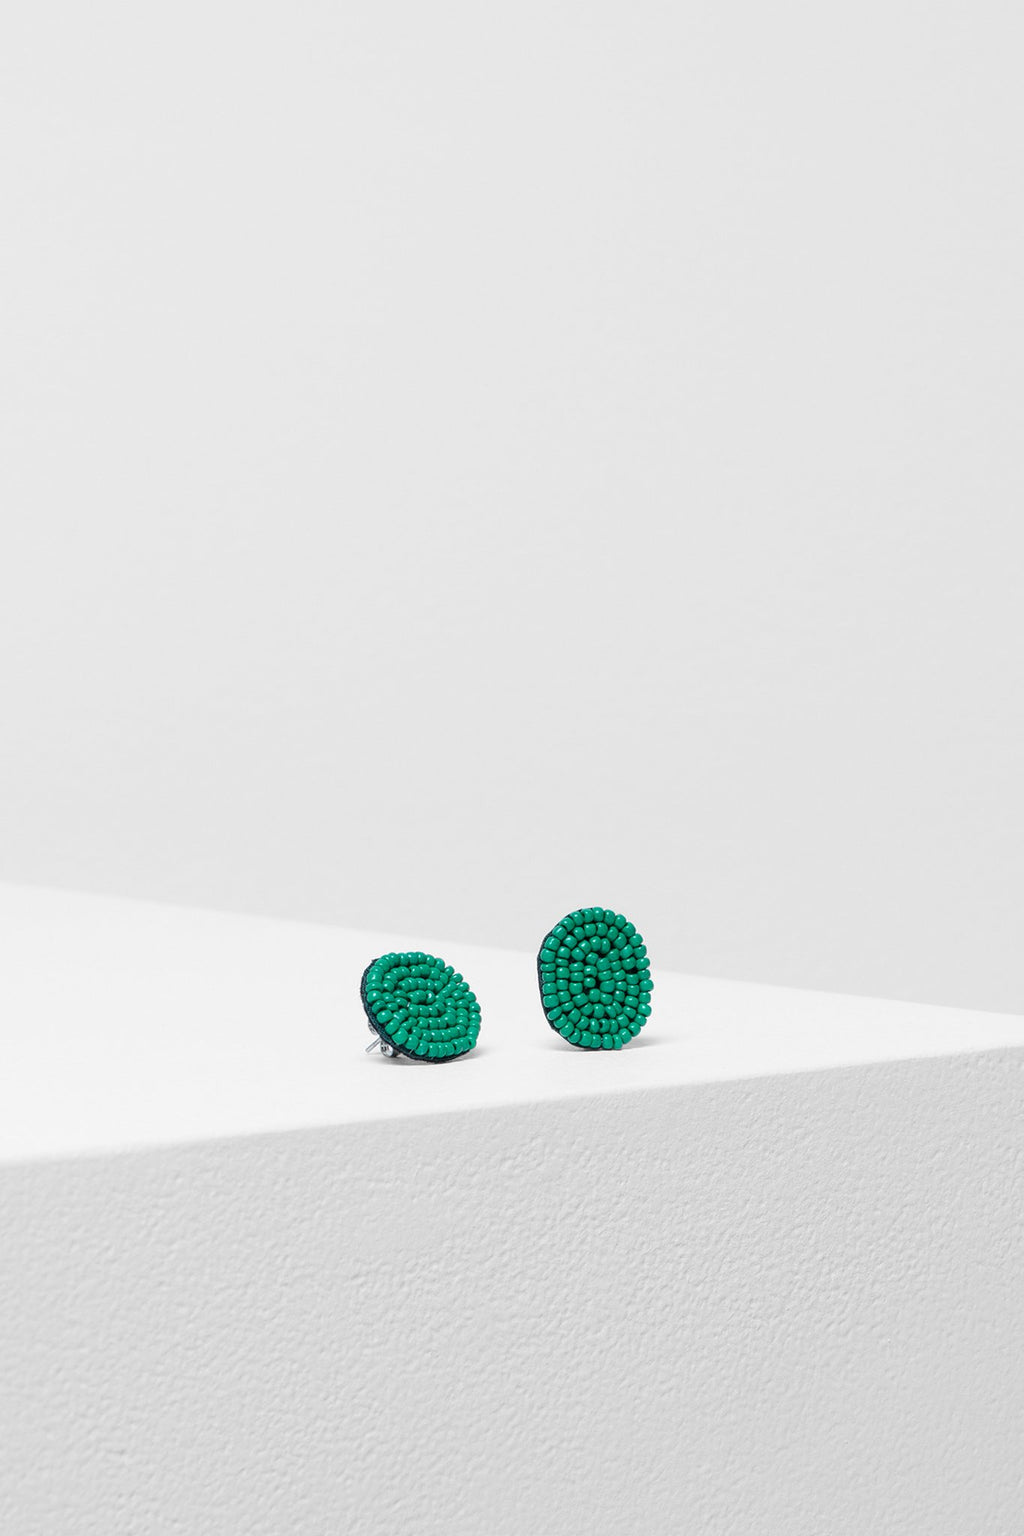 ELK The Label - Stavik Bead Earrings online at PAYA boutique